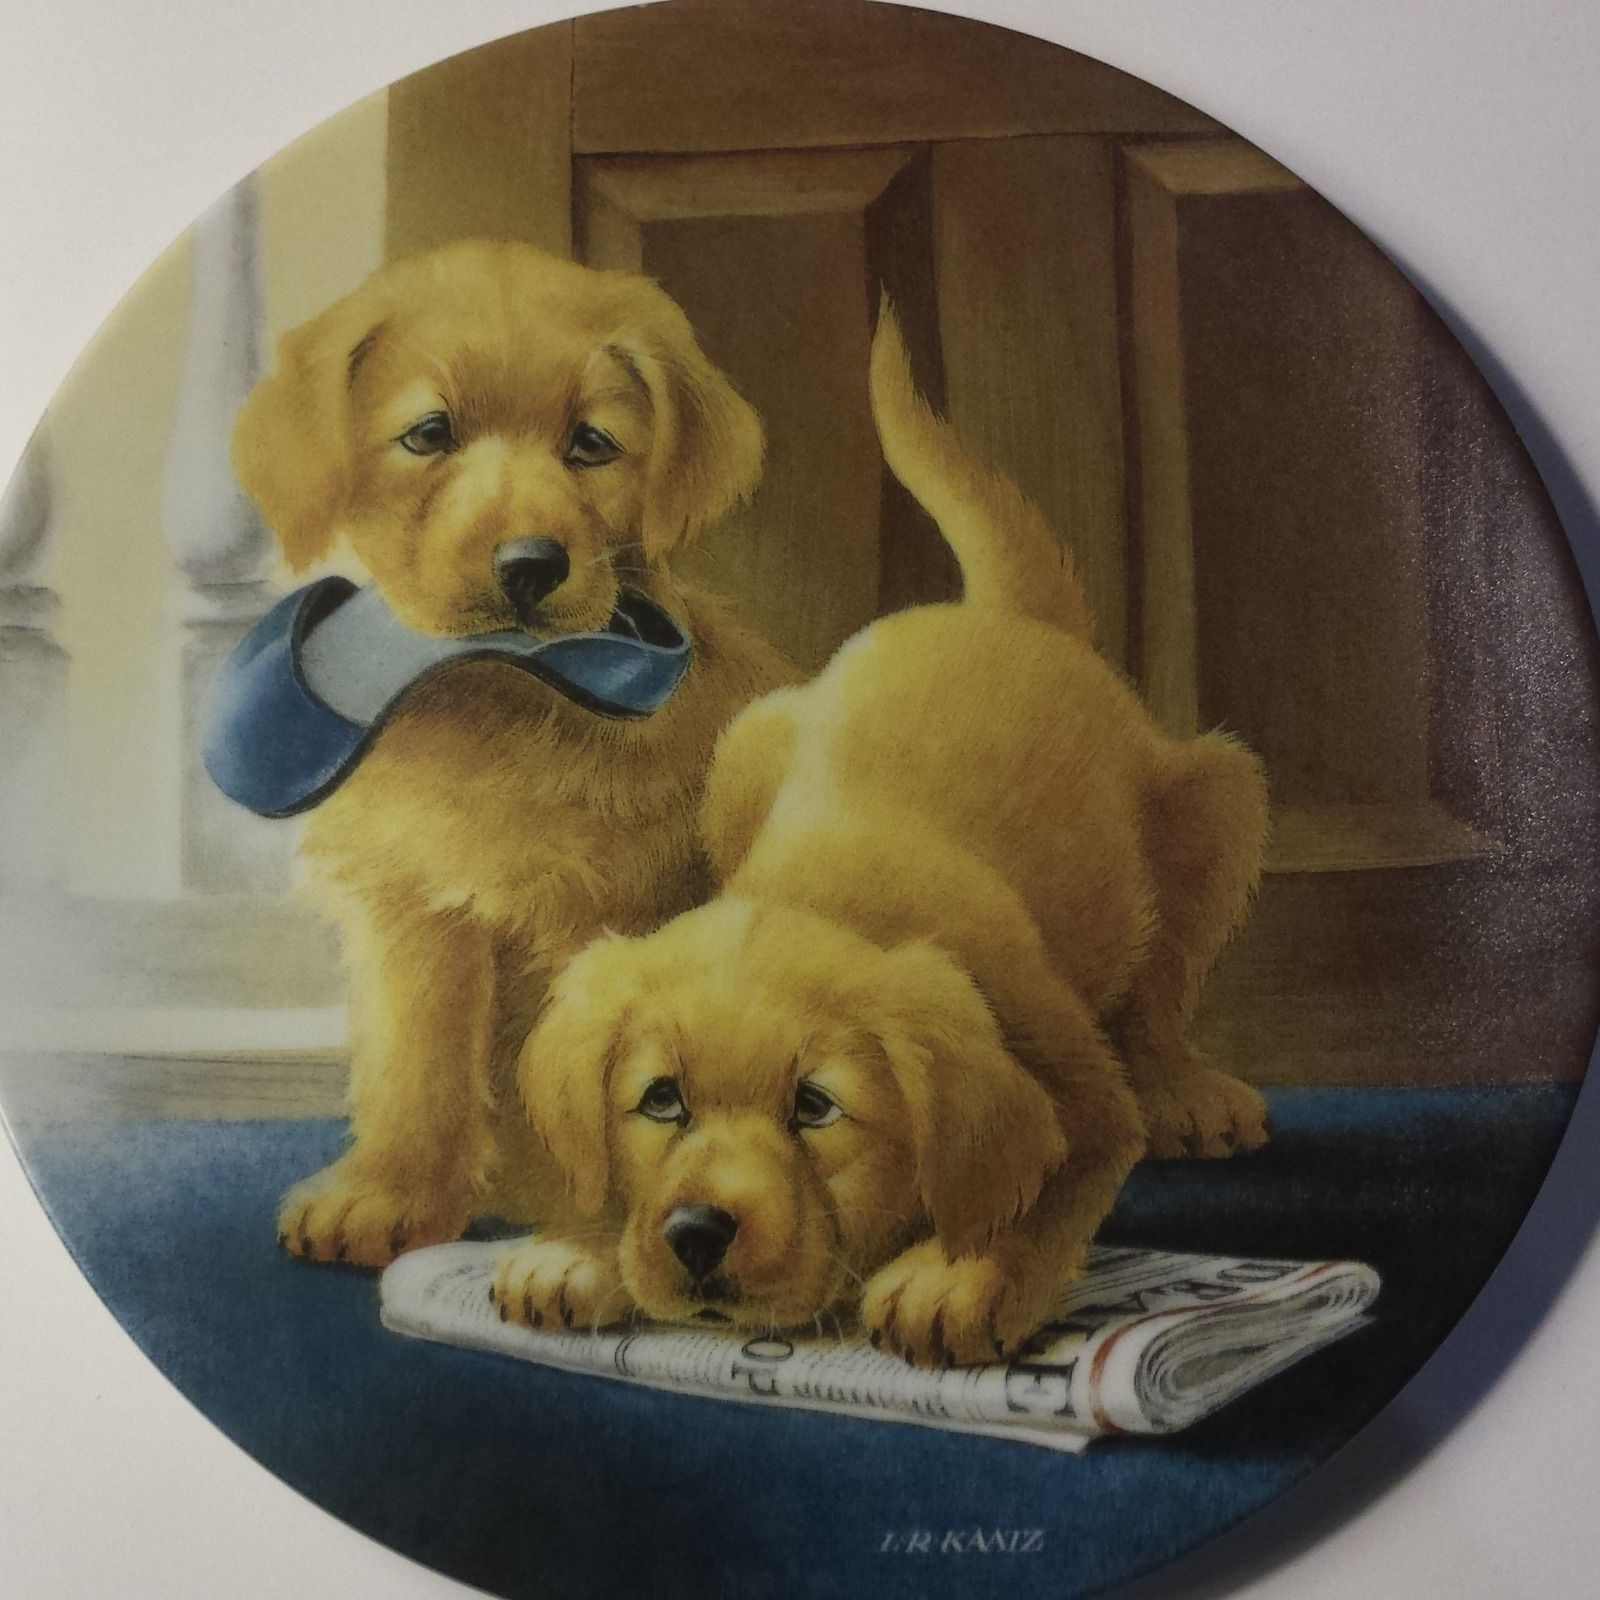 Retrieving Our Dignity L Kaatz 2 Dogs Collector Plate Ebay